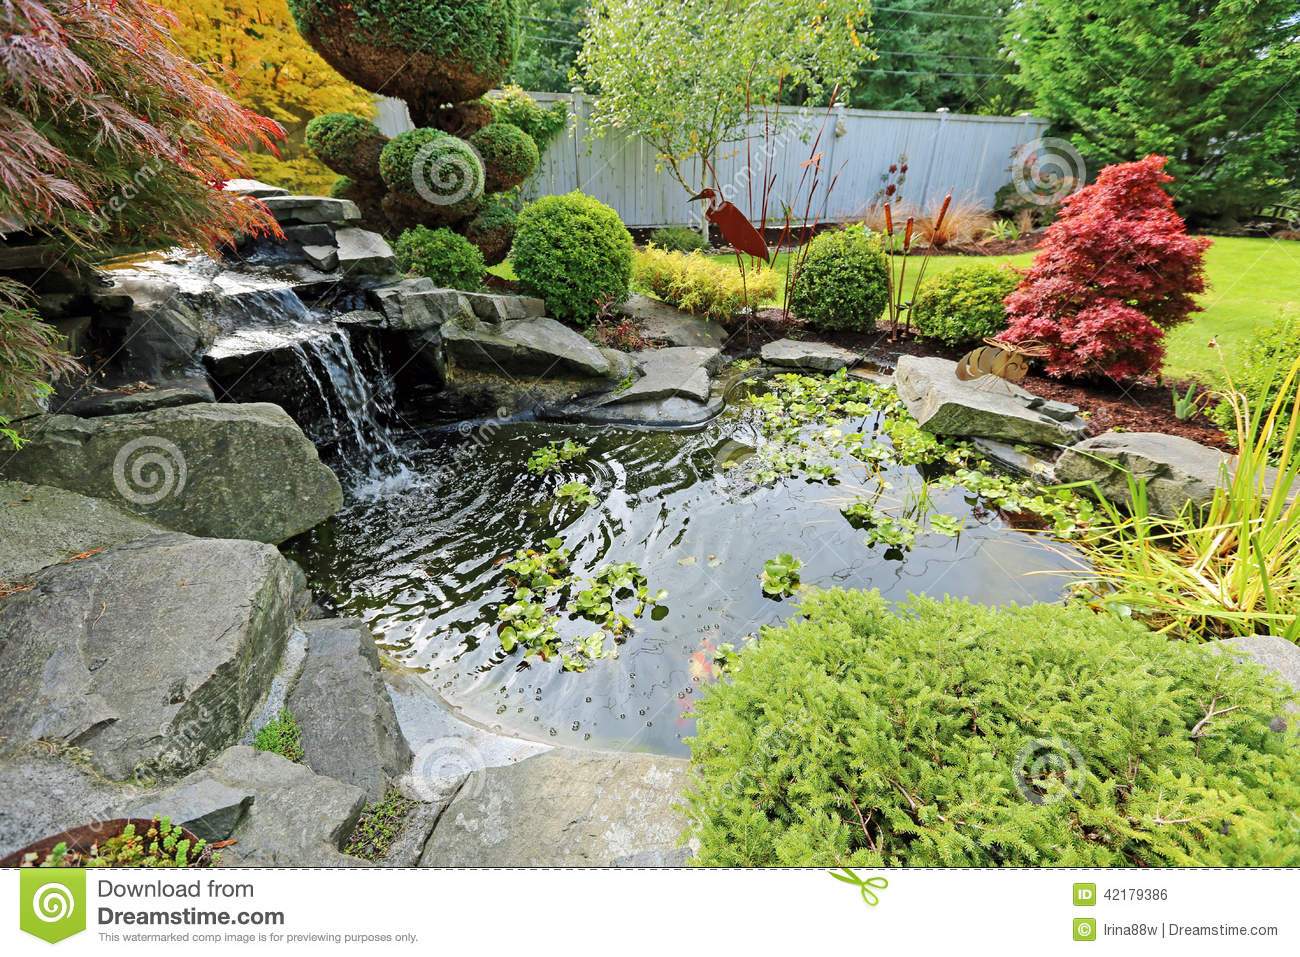 fotos de jardim tropical : fotos de jardim tropical:Small Tropical Garden Design with Waterfalls